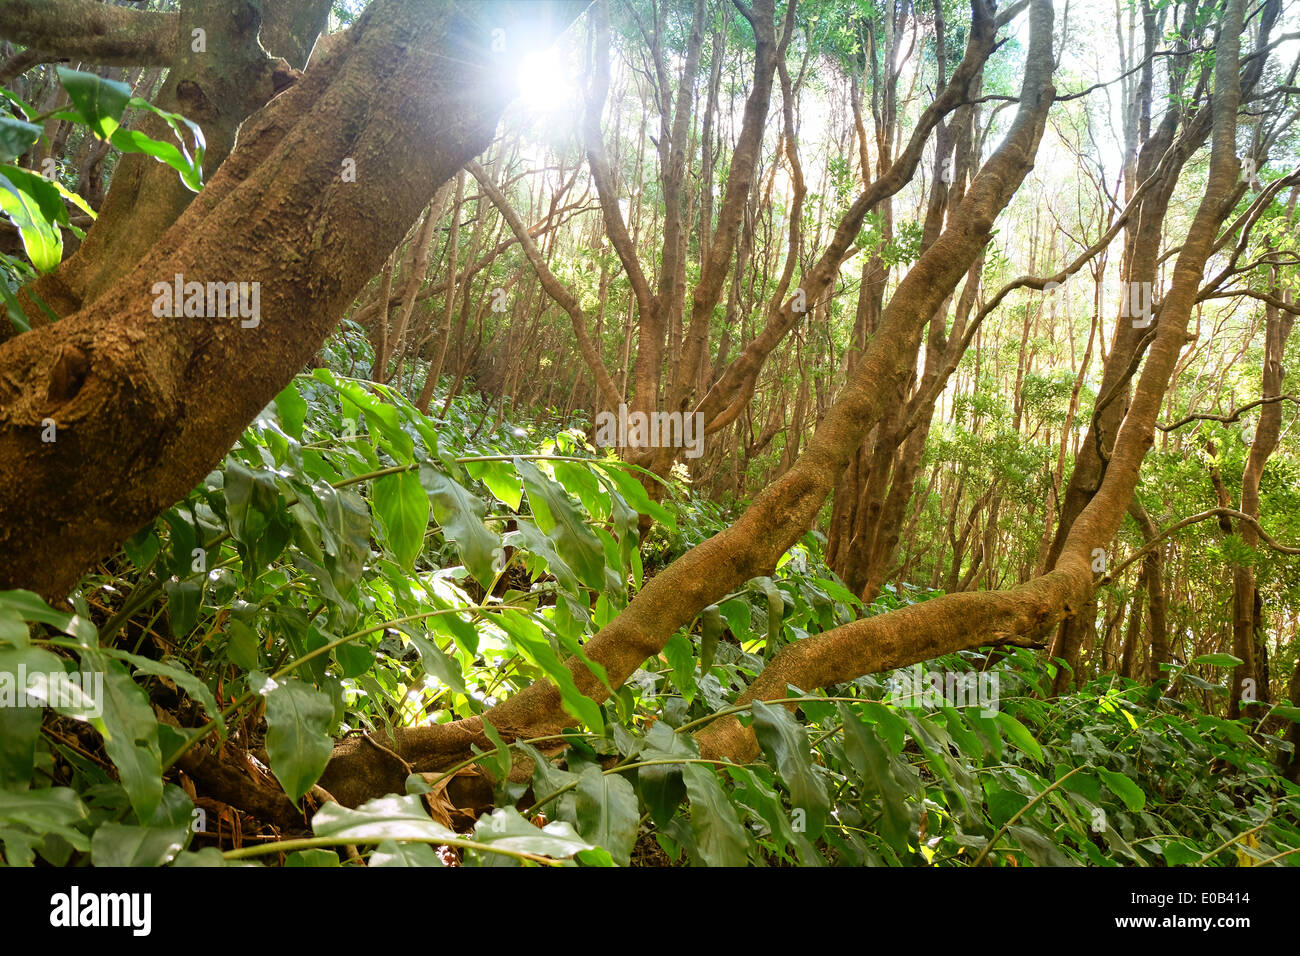 Portugal, Azores, Sao Miguel, Primeval forest at Lagoa Verde - Stock Image